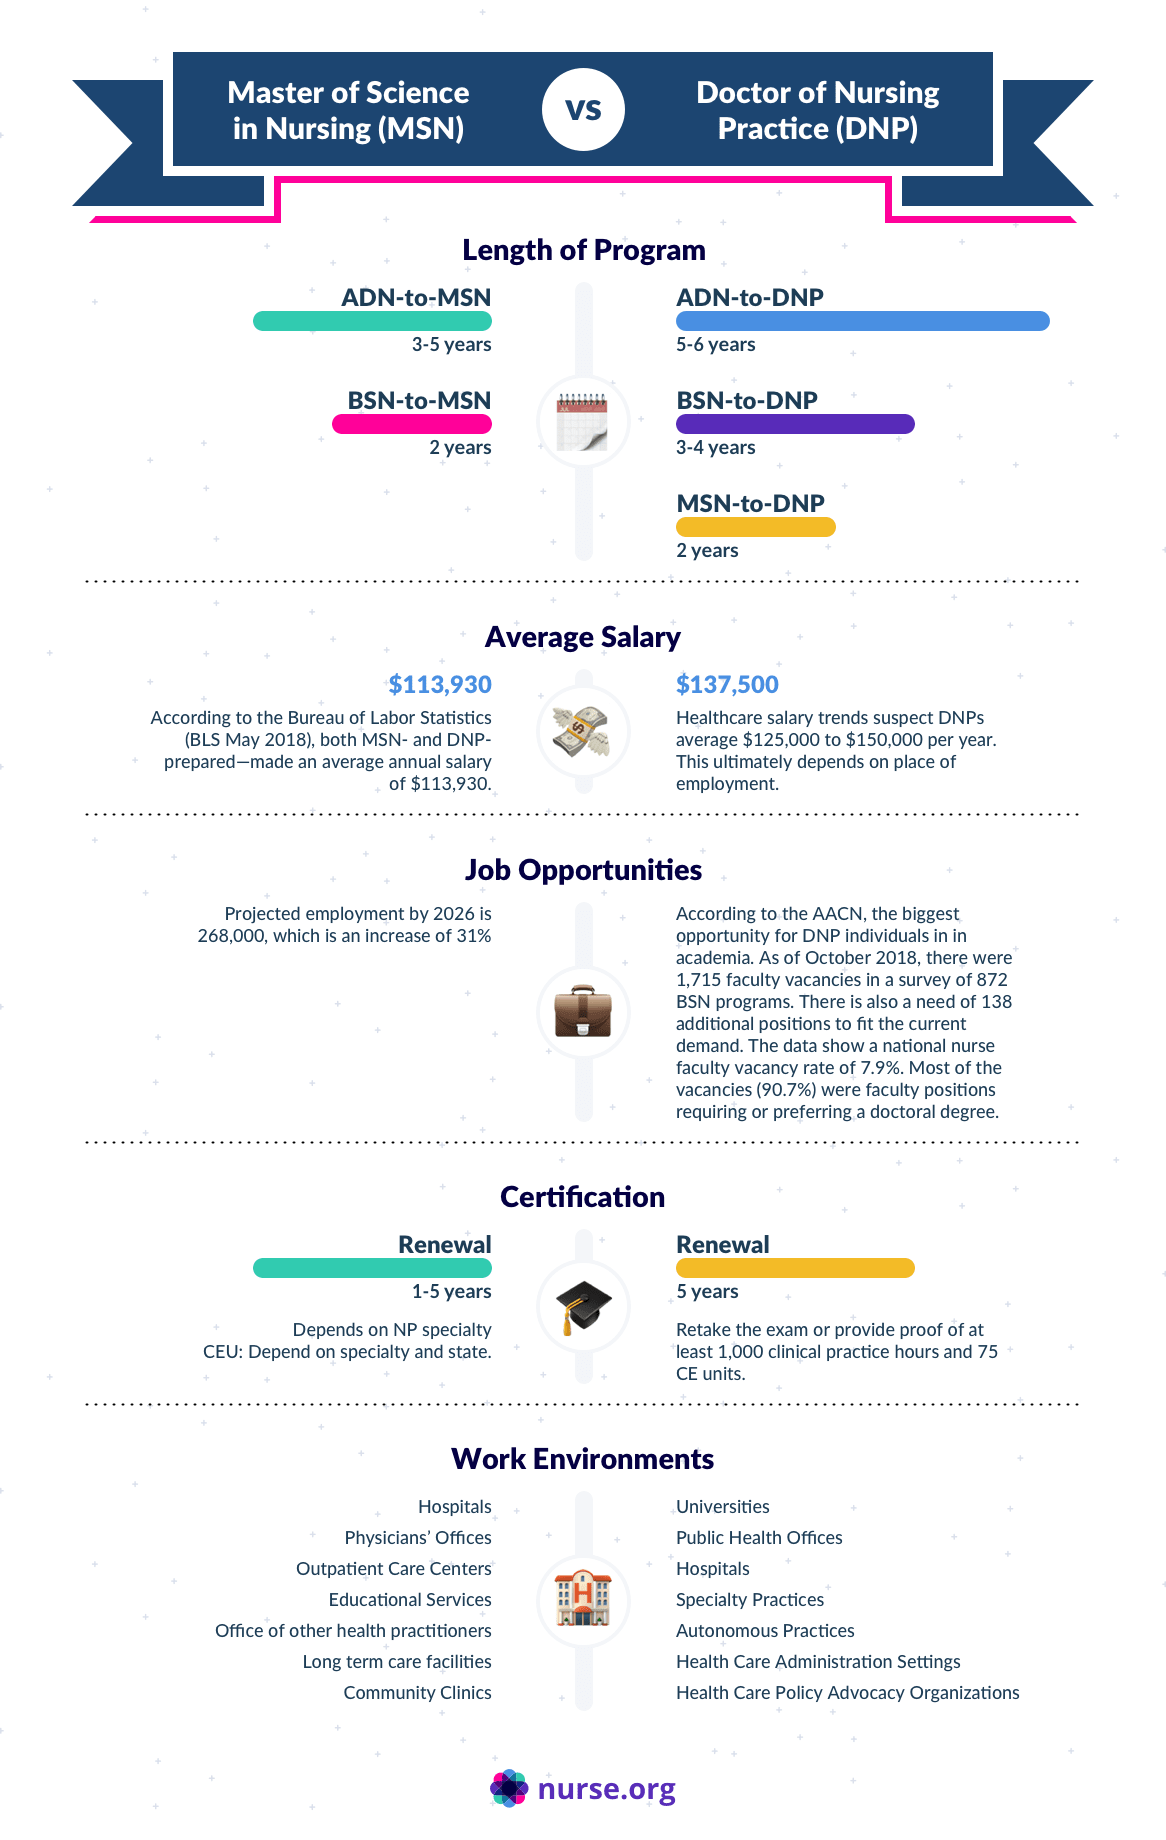 Infographic depicting different salaries and roles for nurse practitioners